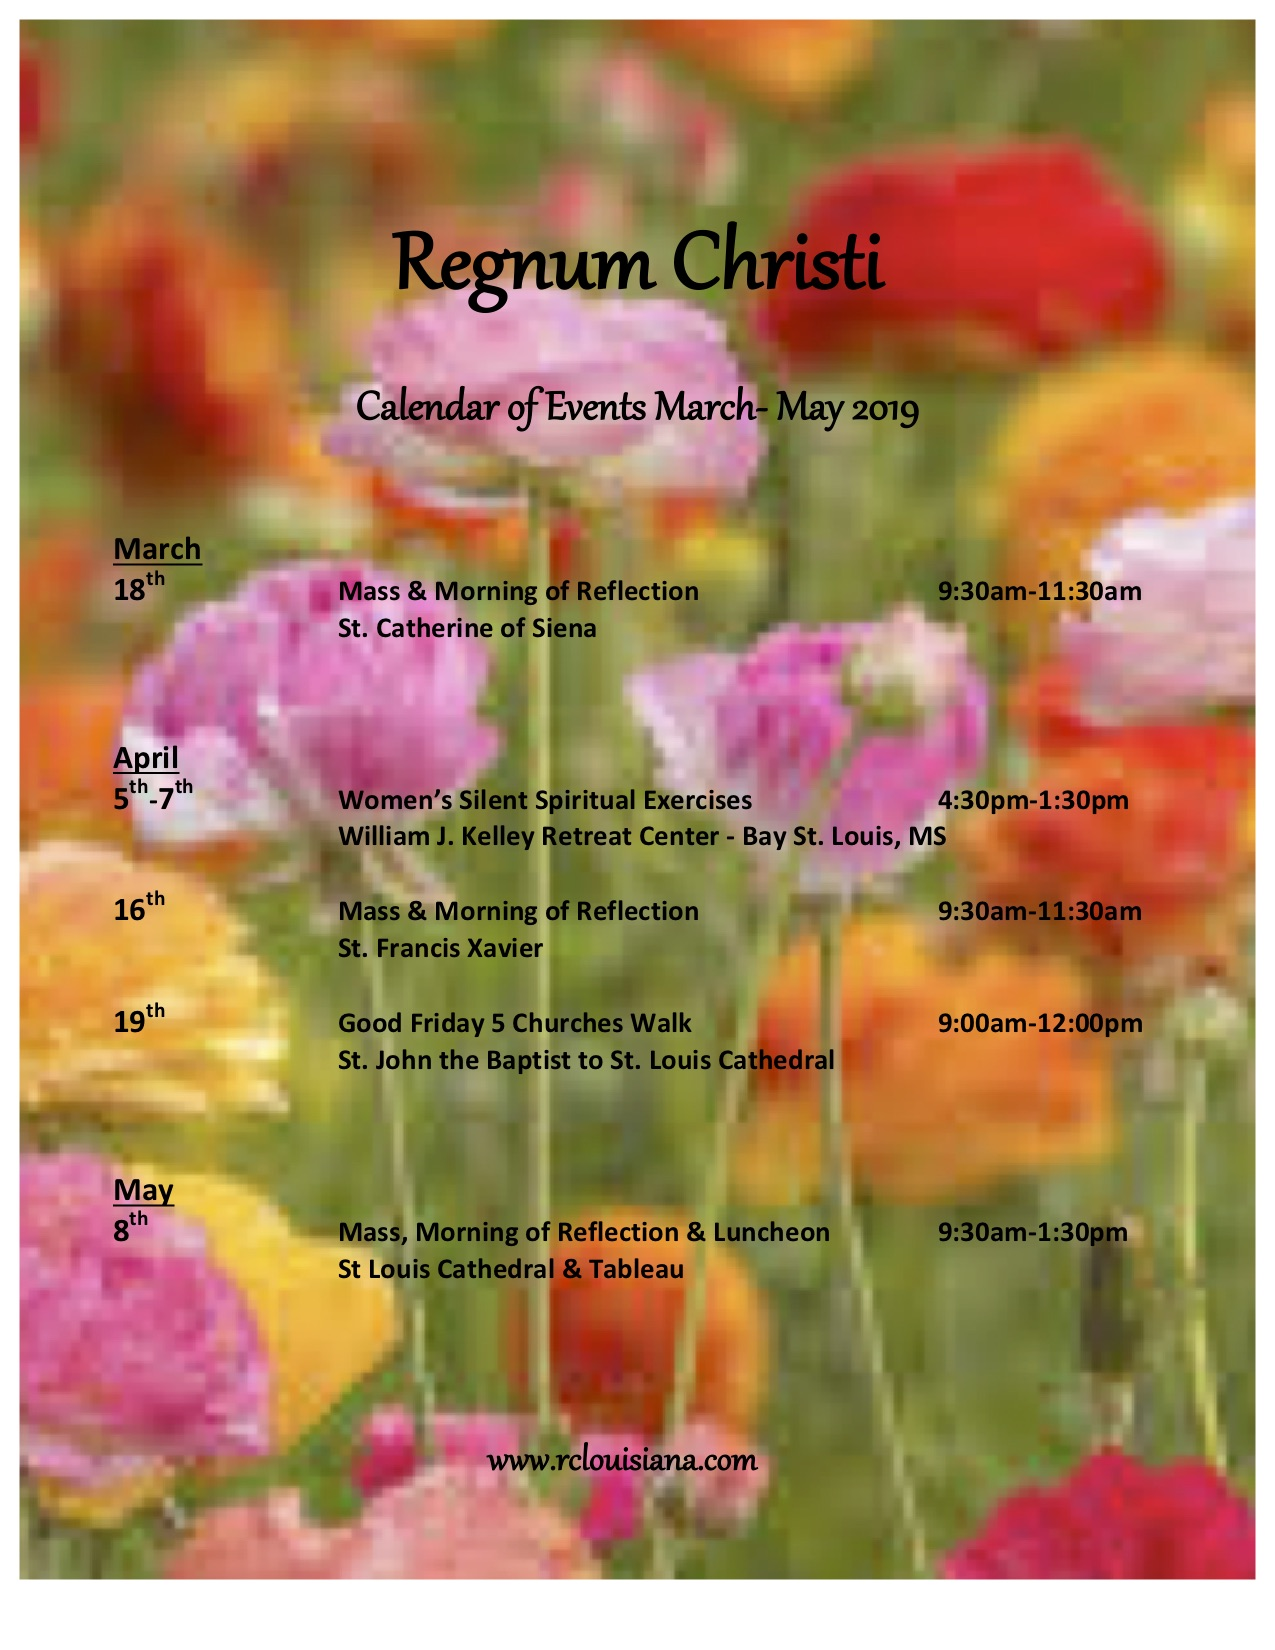 Regnum Christi Calendar March- May 2019.jpg